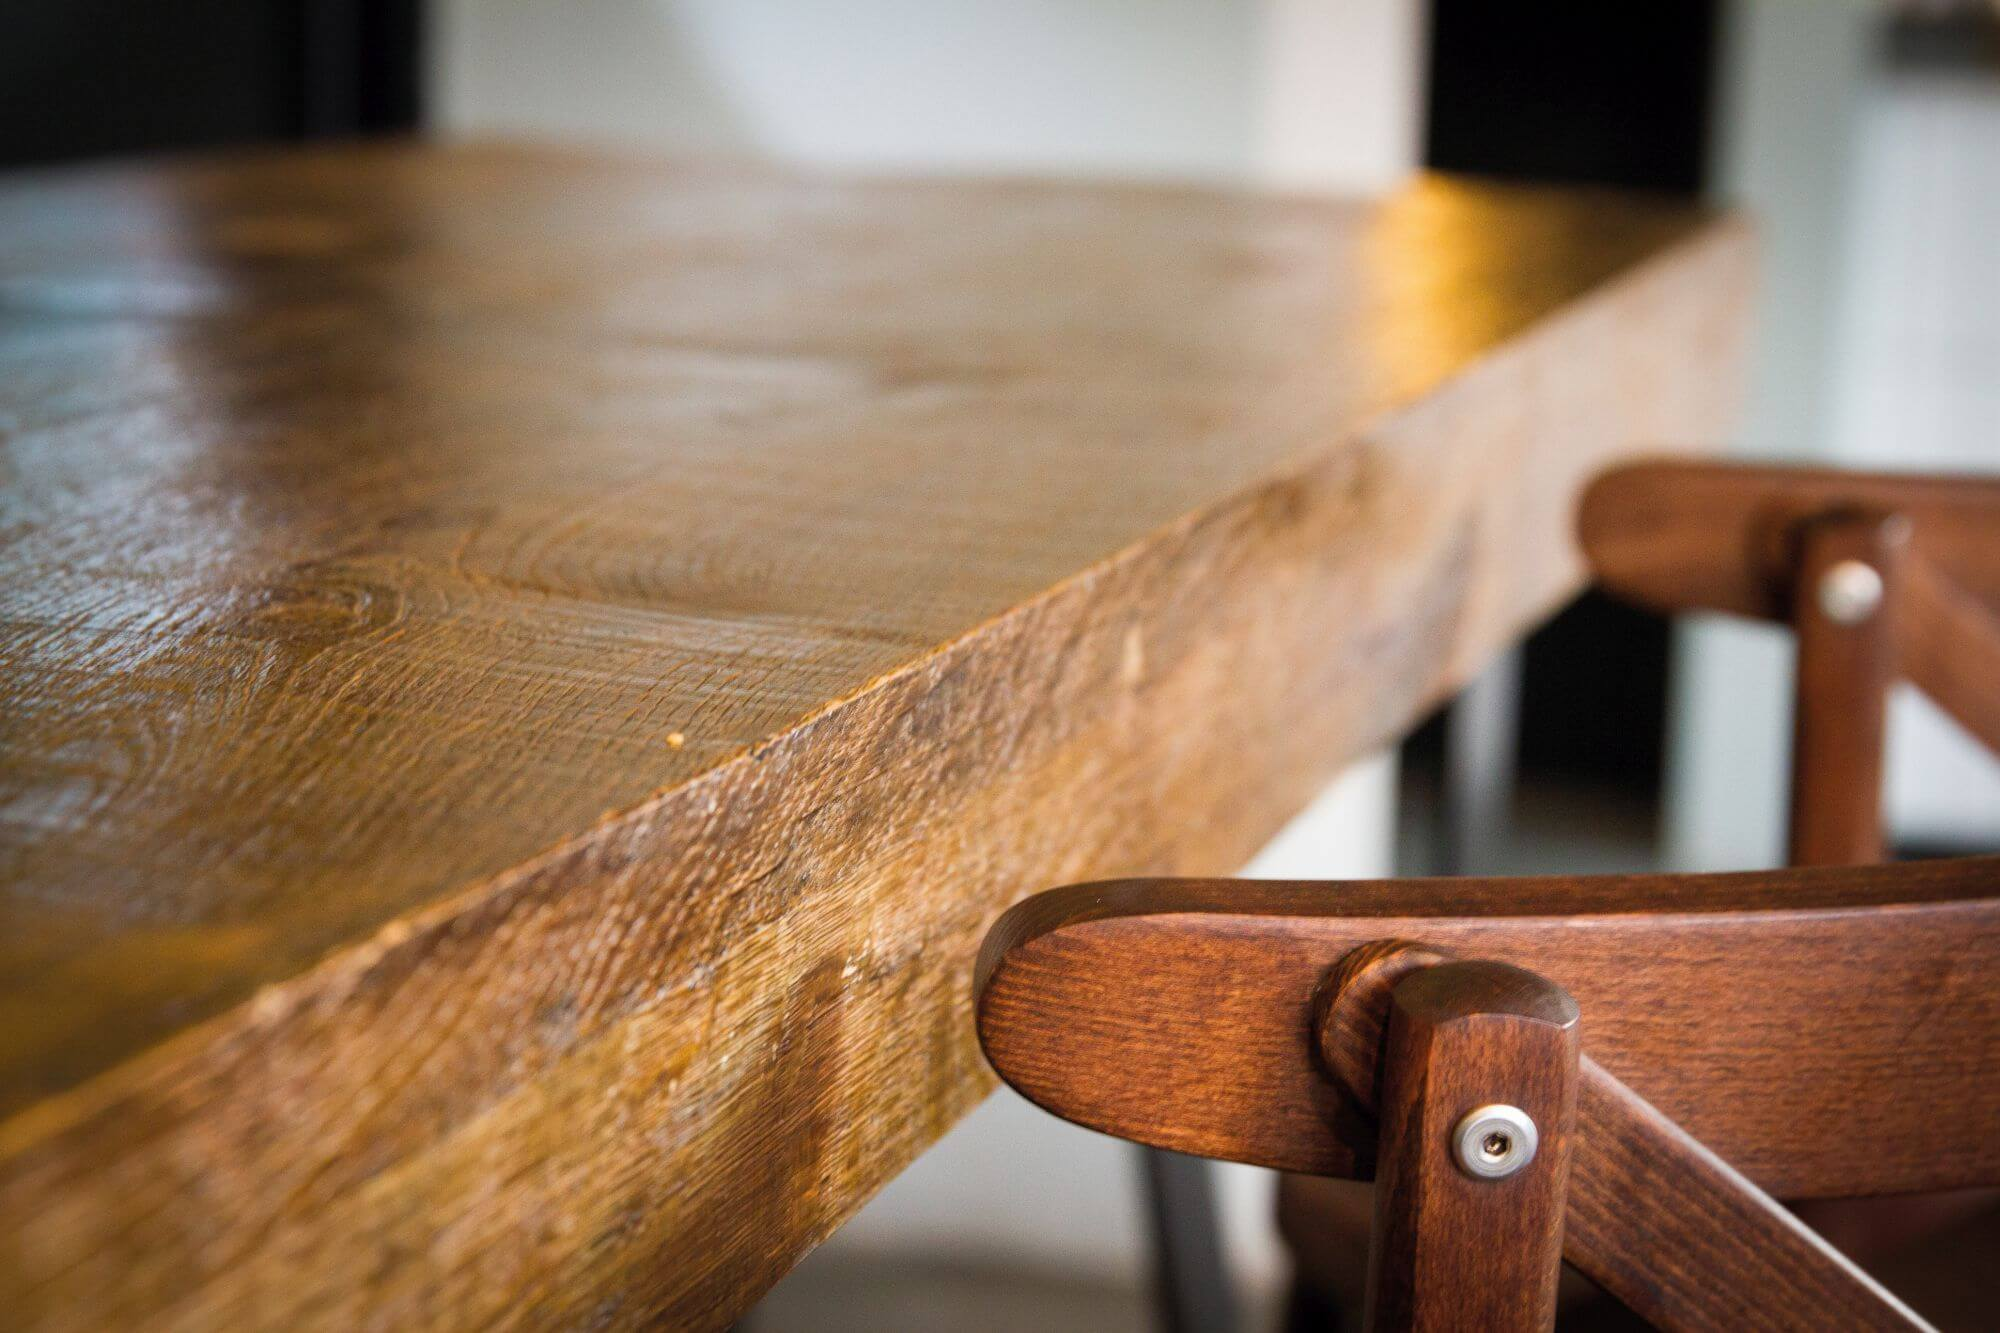 Details of restaurant furniture finished with Rubio Monocoat.